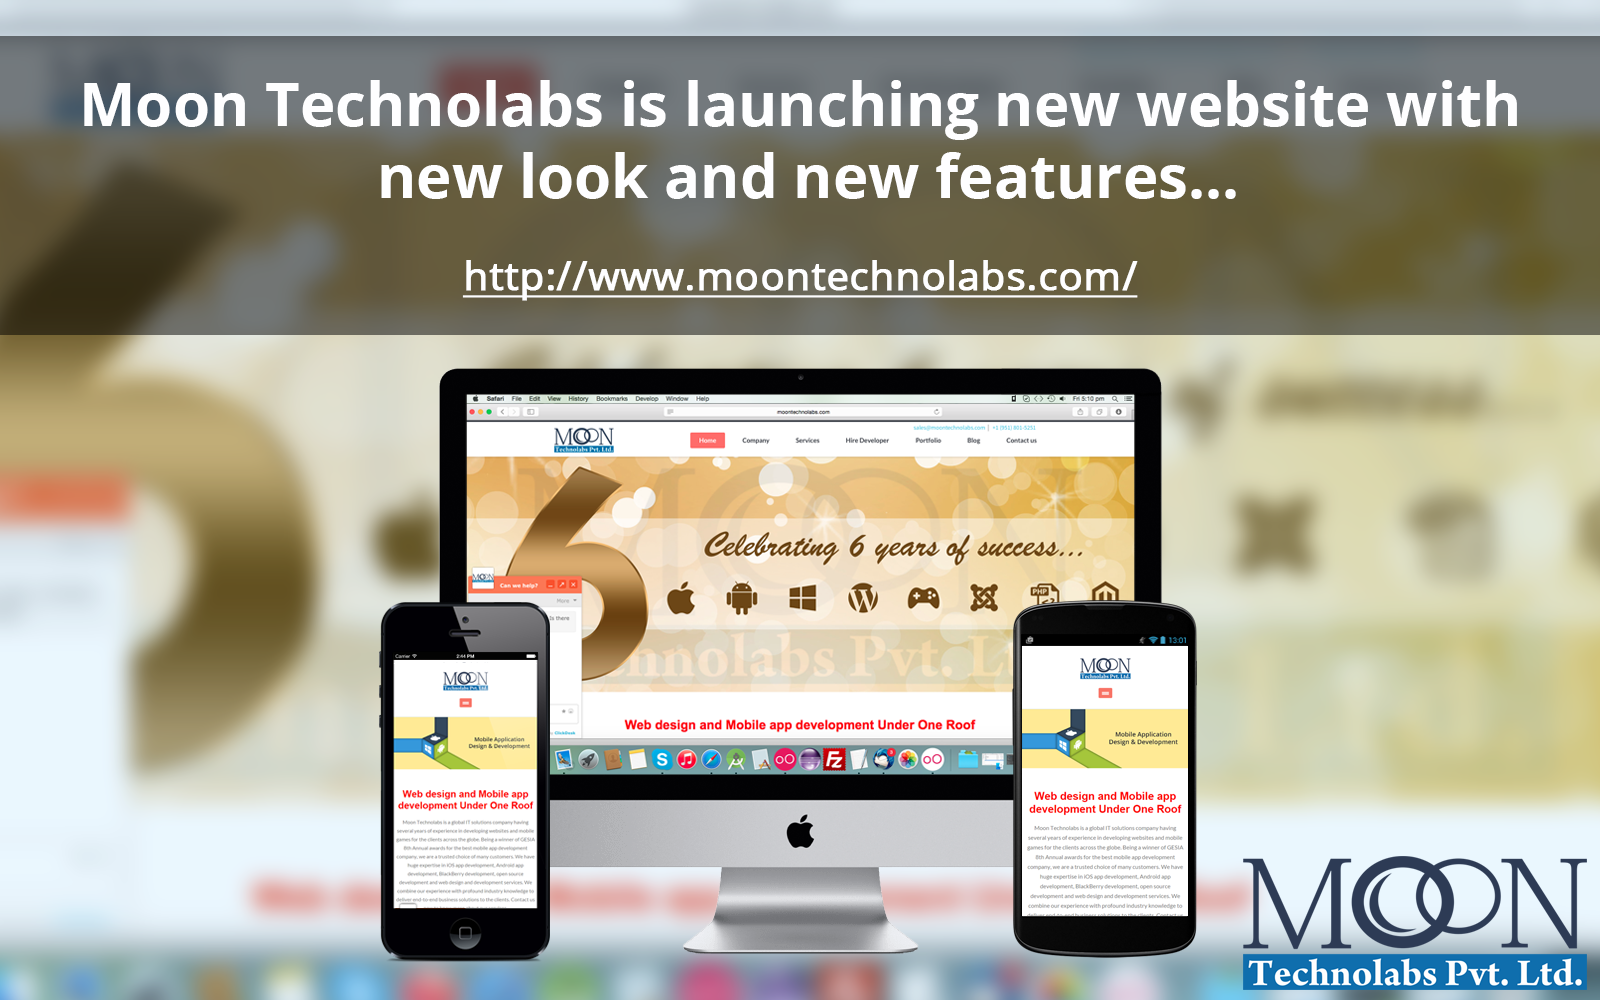 Moon Technolabs announces the launch of redesigned website